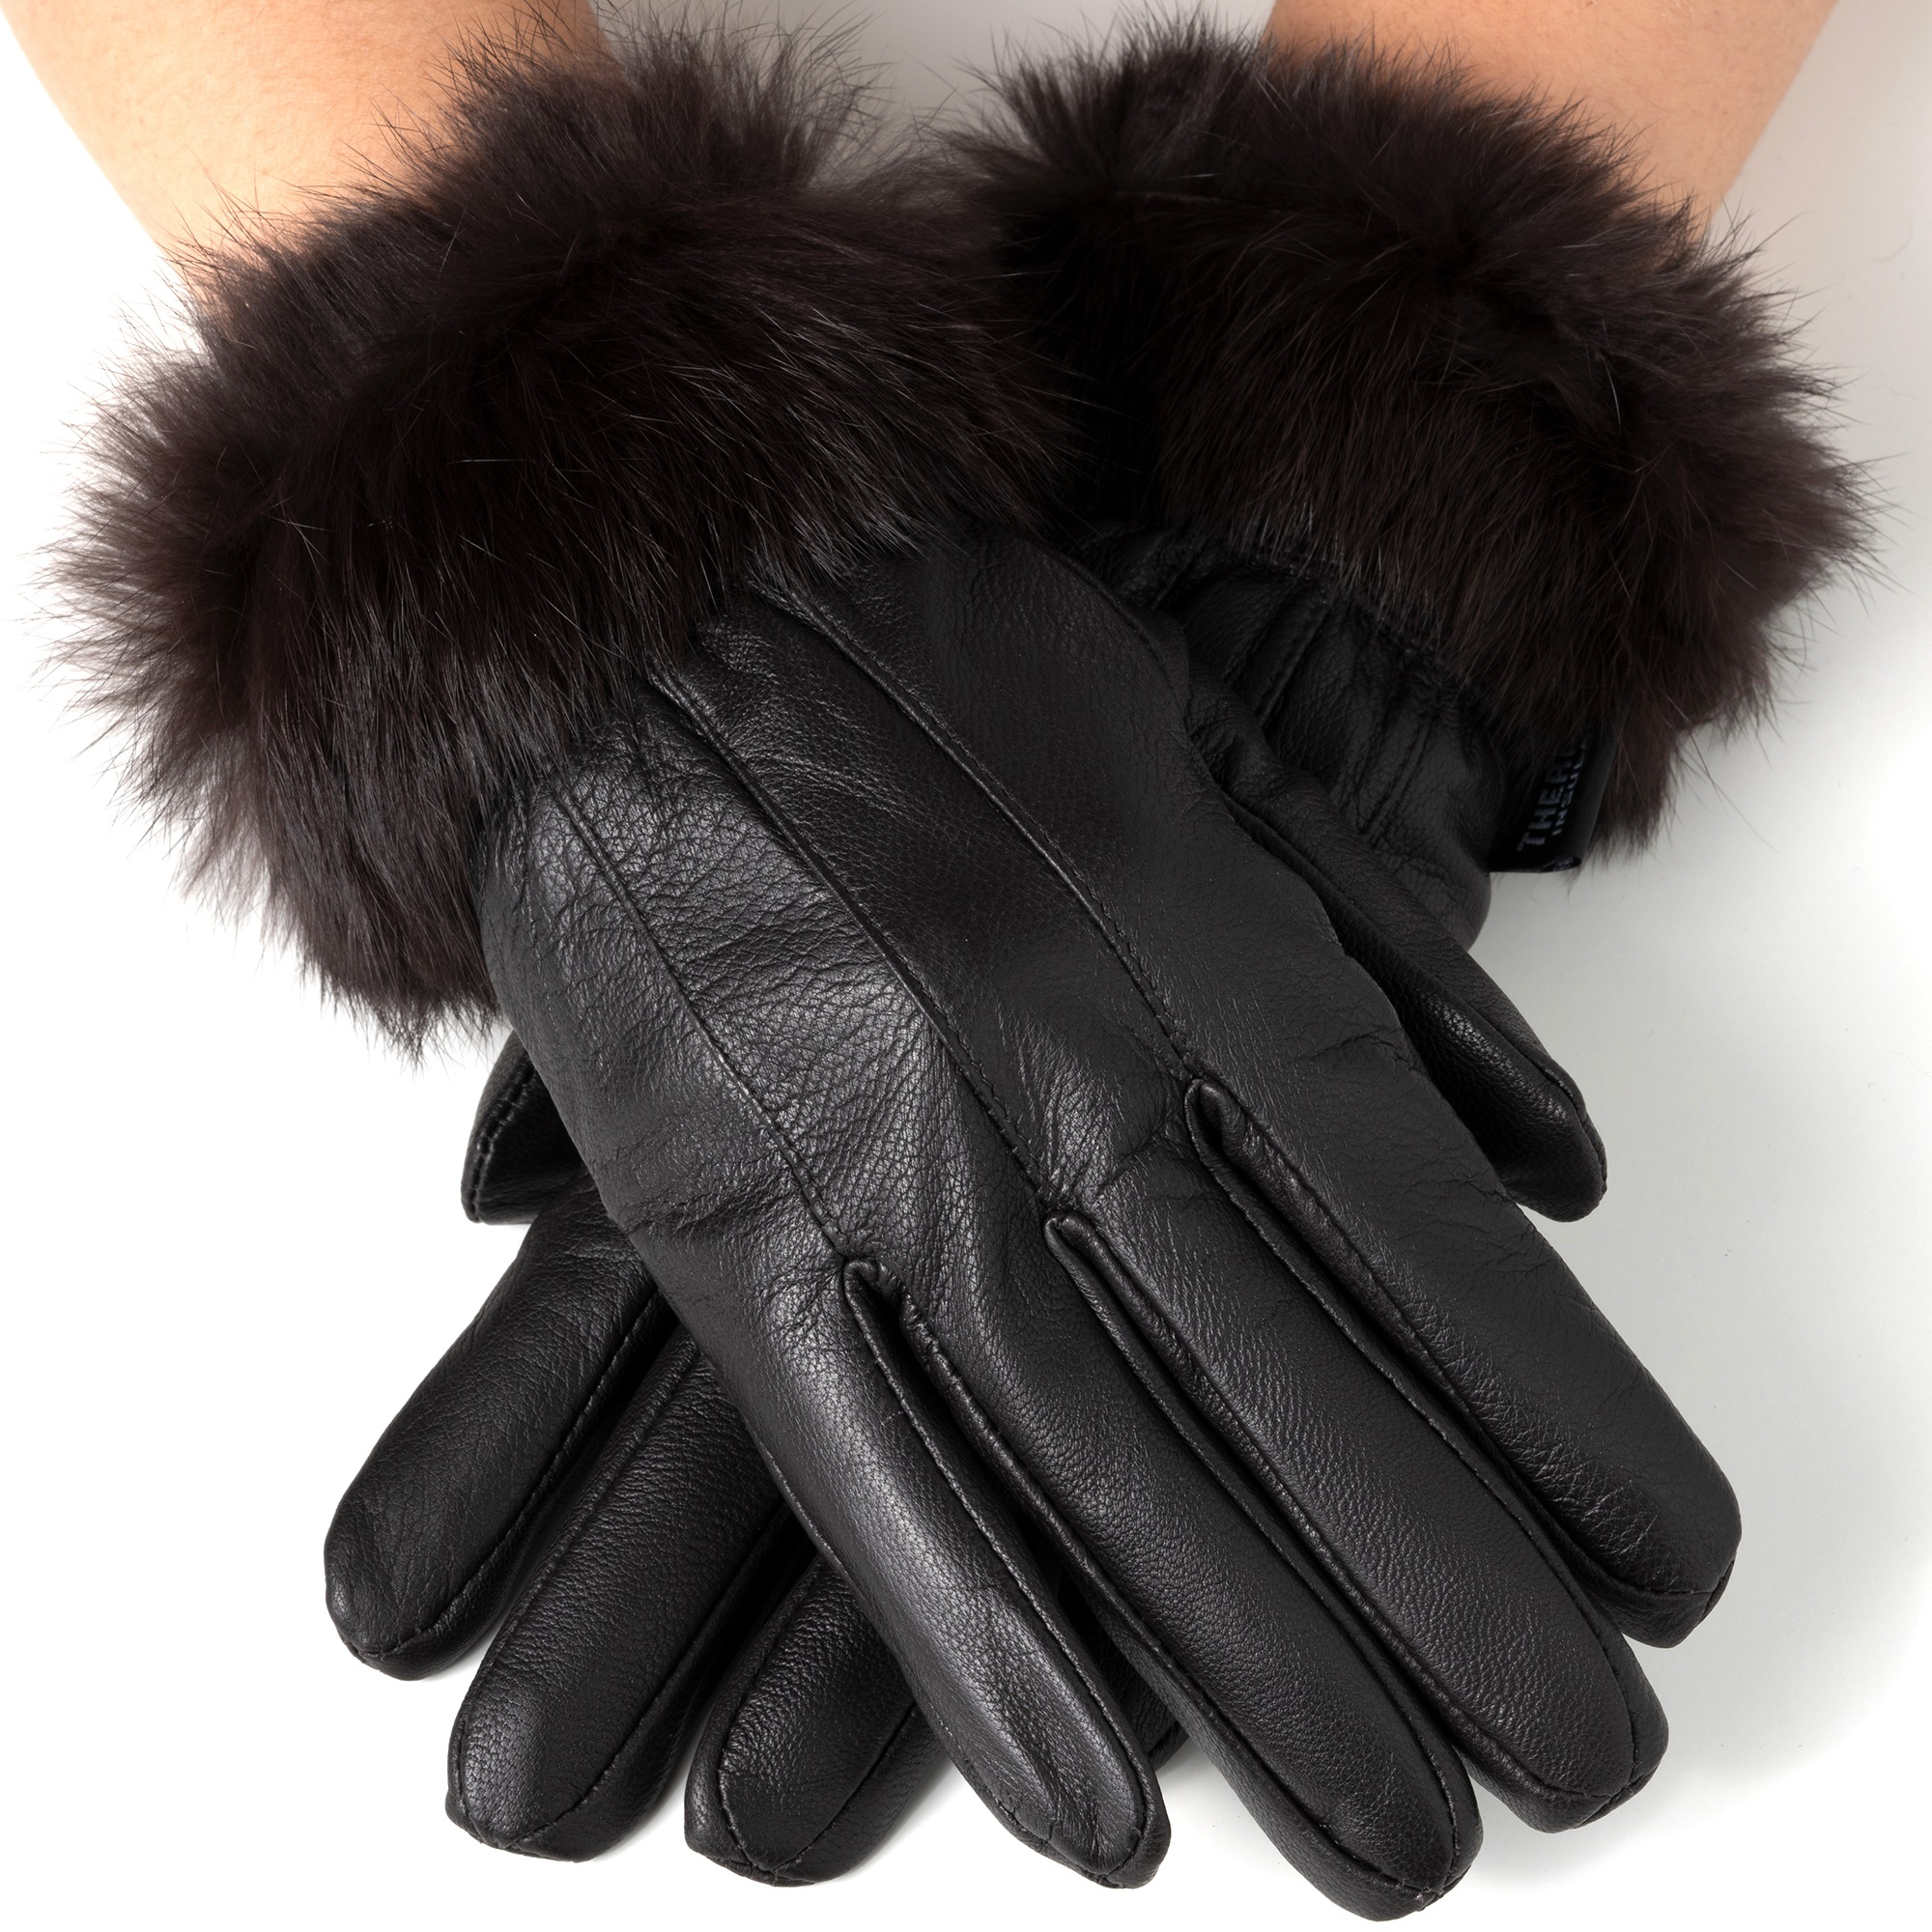 Alpine Swiss Womens Dressy Gloves Genuine Leather Thermal Lining Fur Trim Cuff